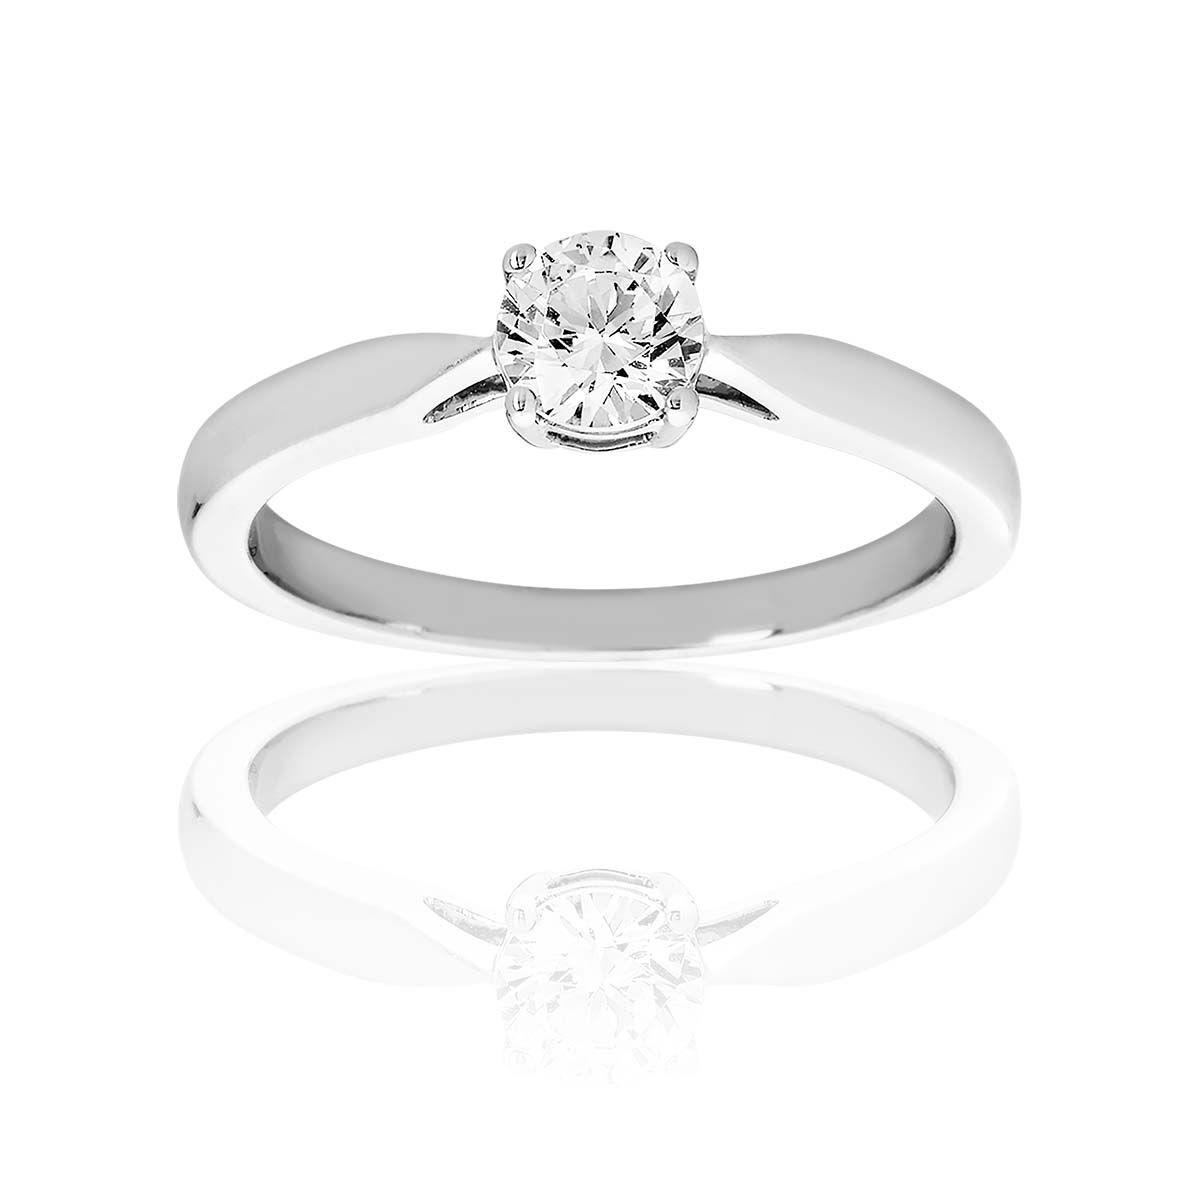 Diamant 4 7501000 Ct Solitaire Promesse Or 0 qSUzMVp